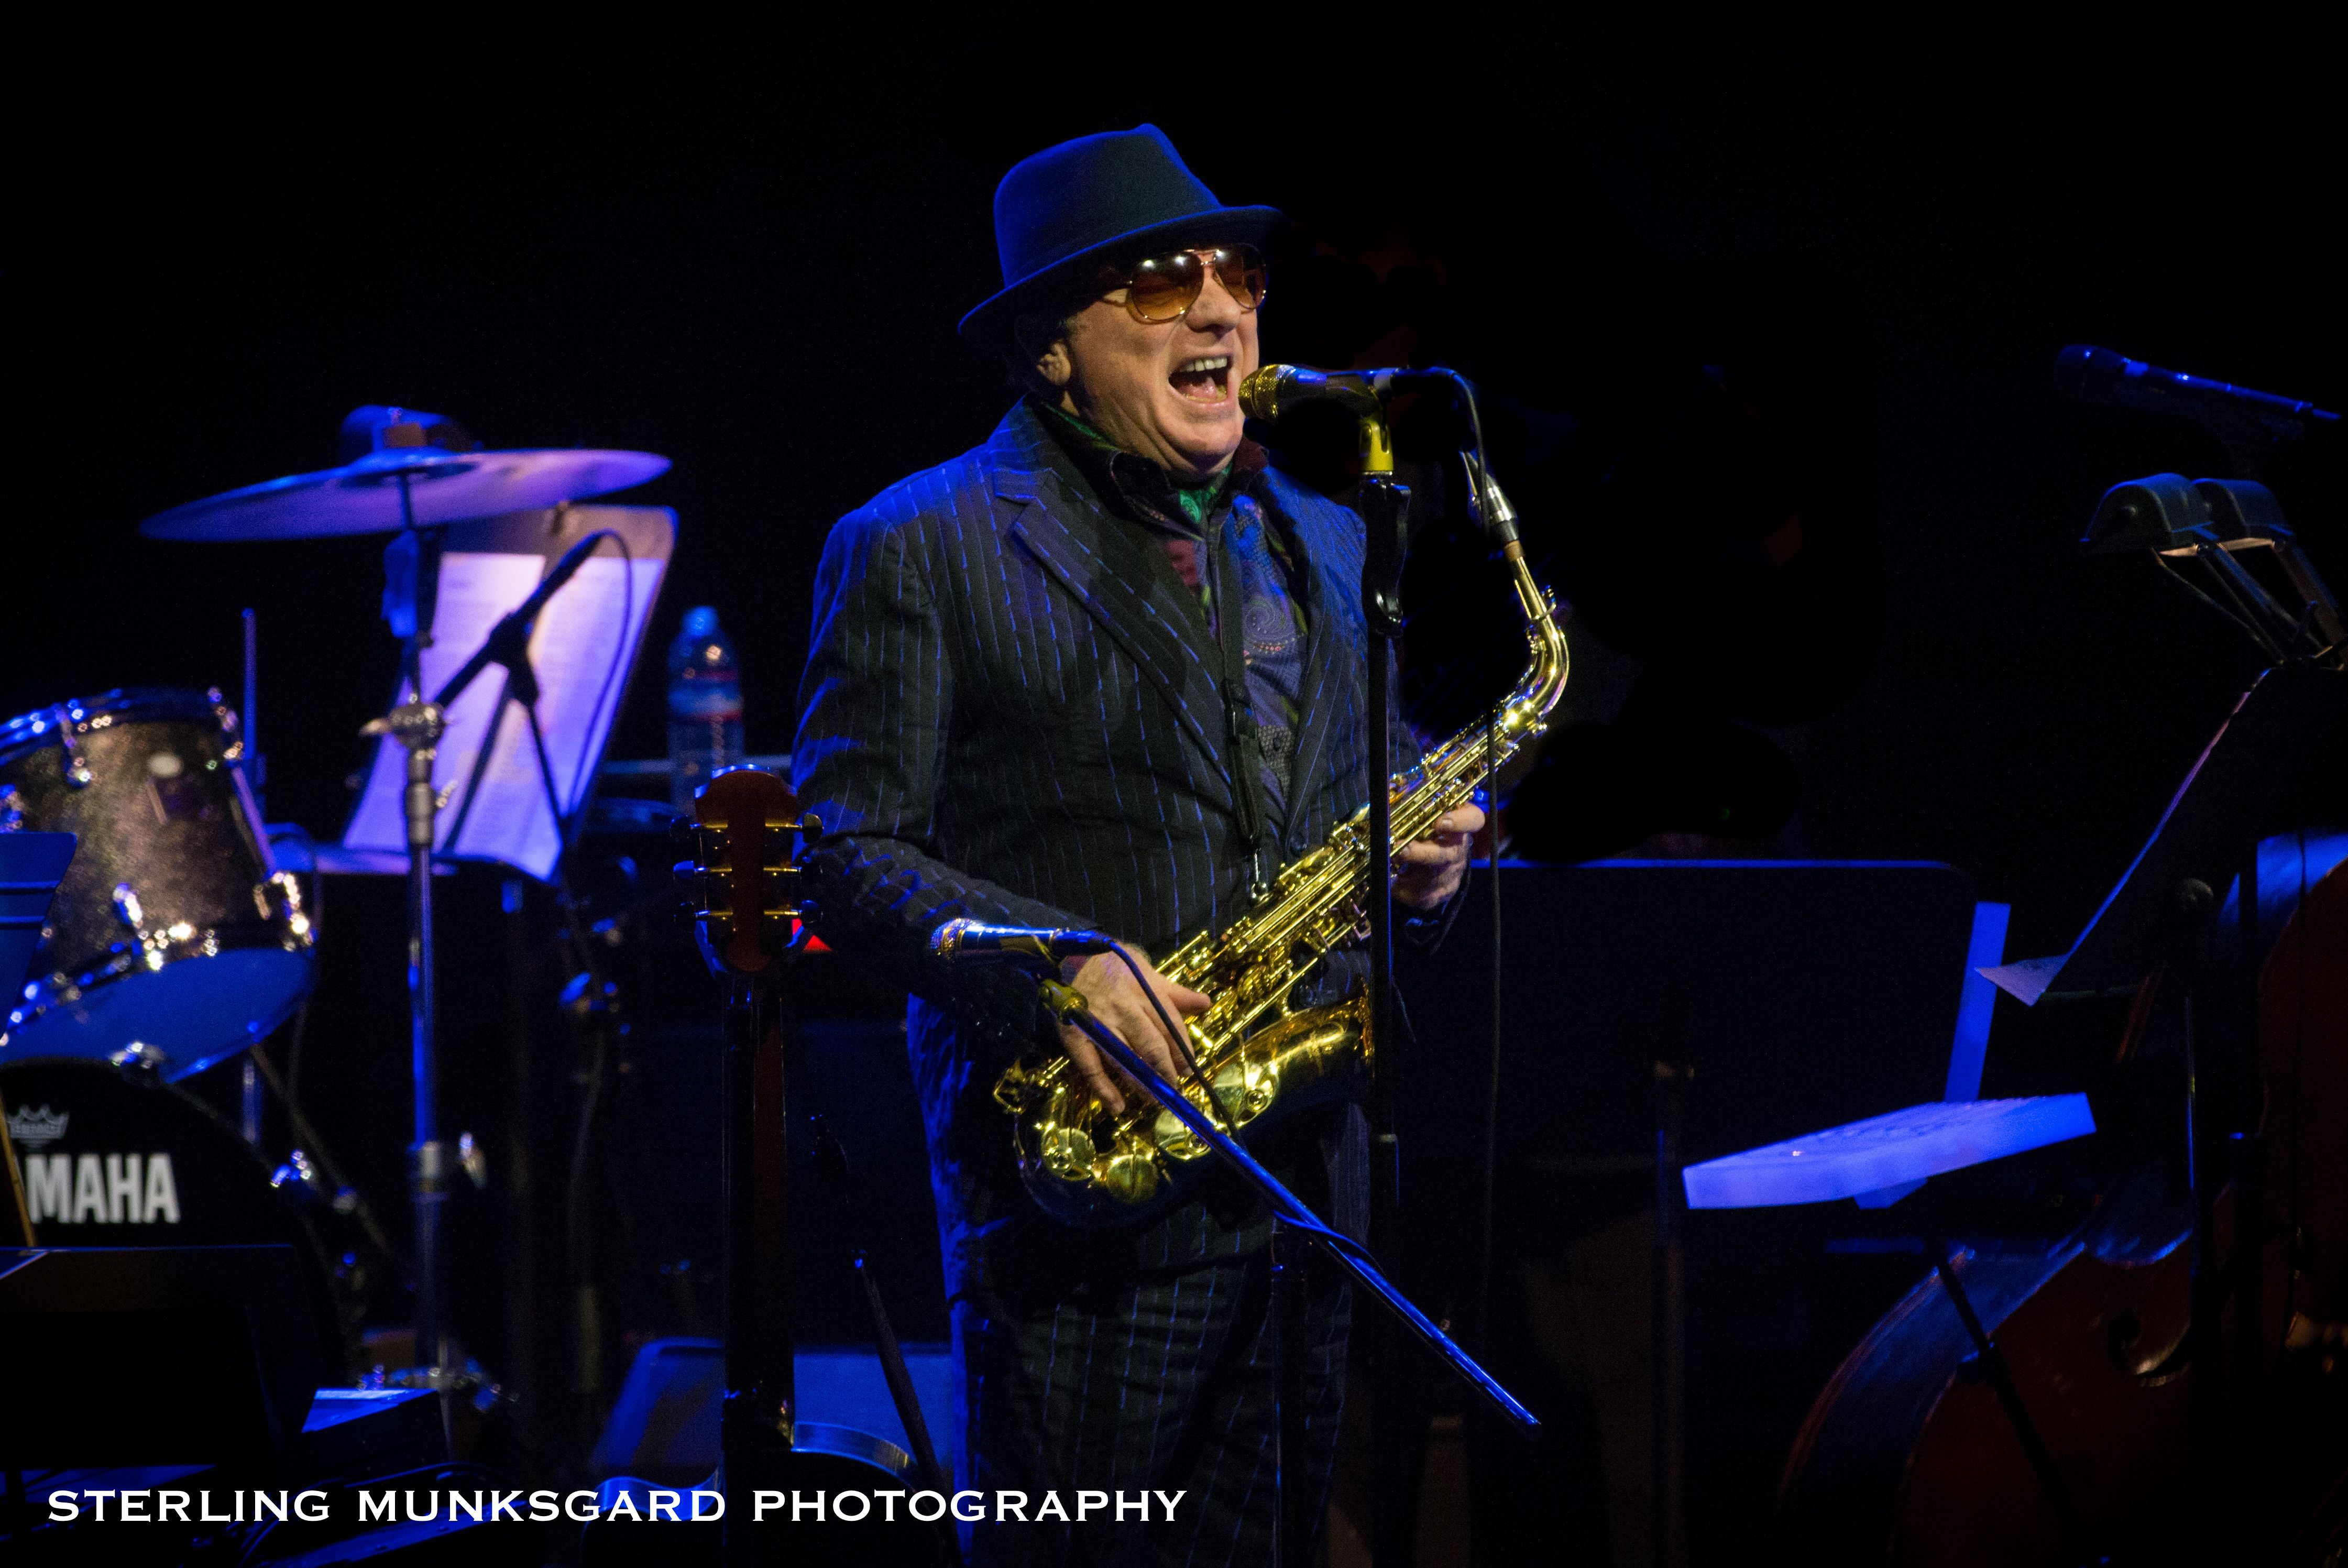 Van morrison tour dates in Brisbane